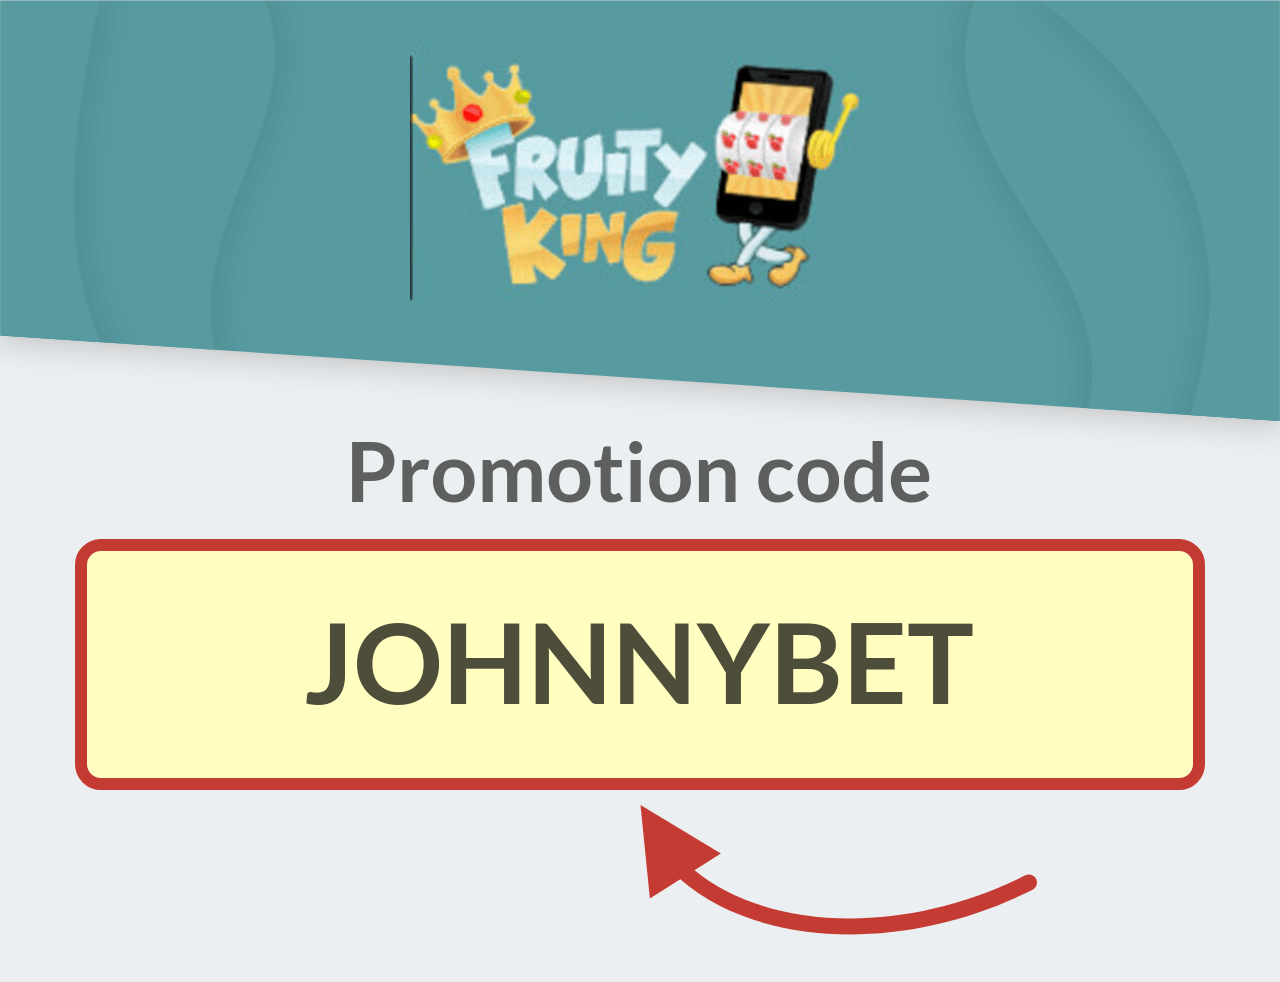 Fruity King Casino Promotion Code